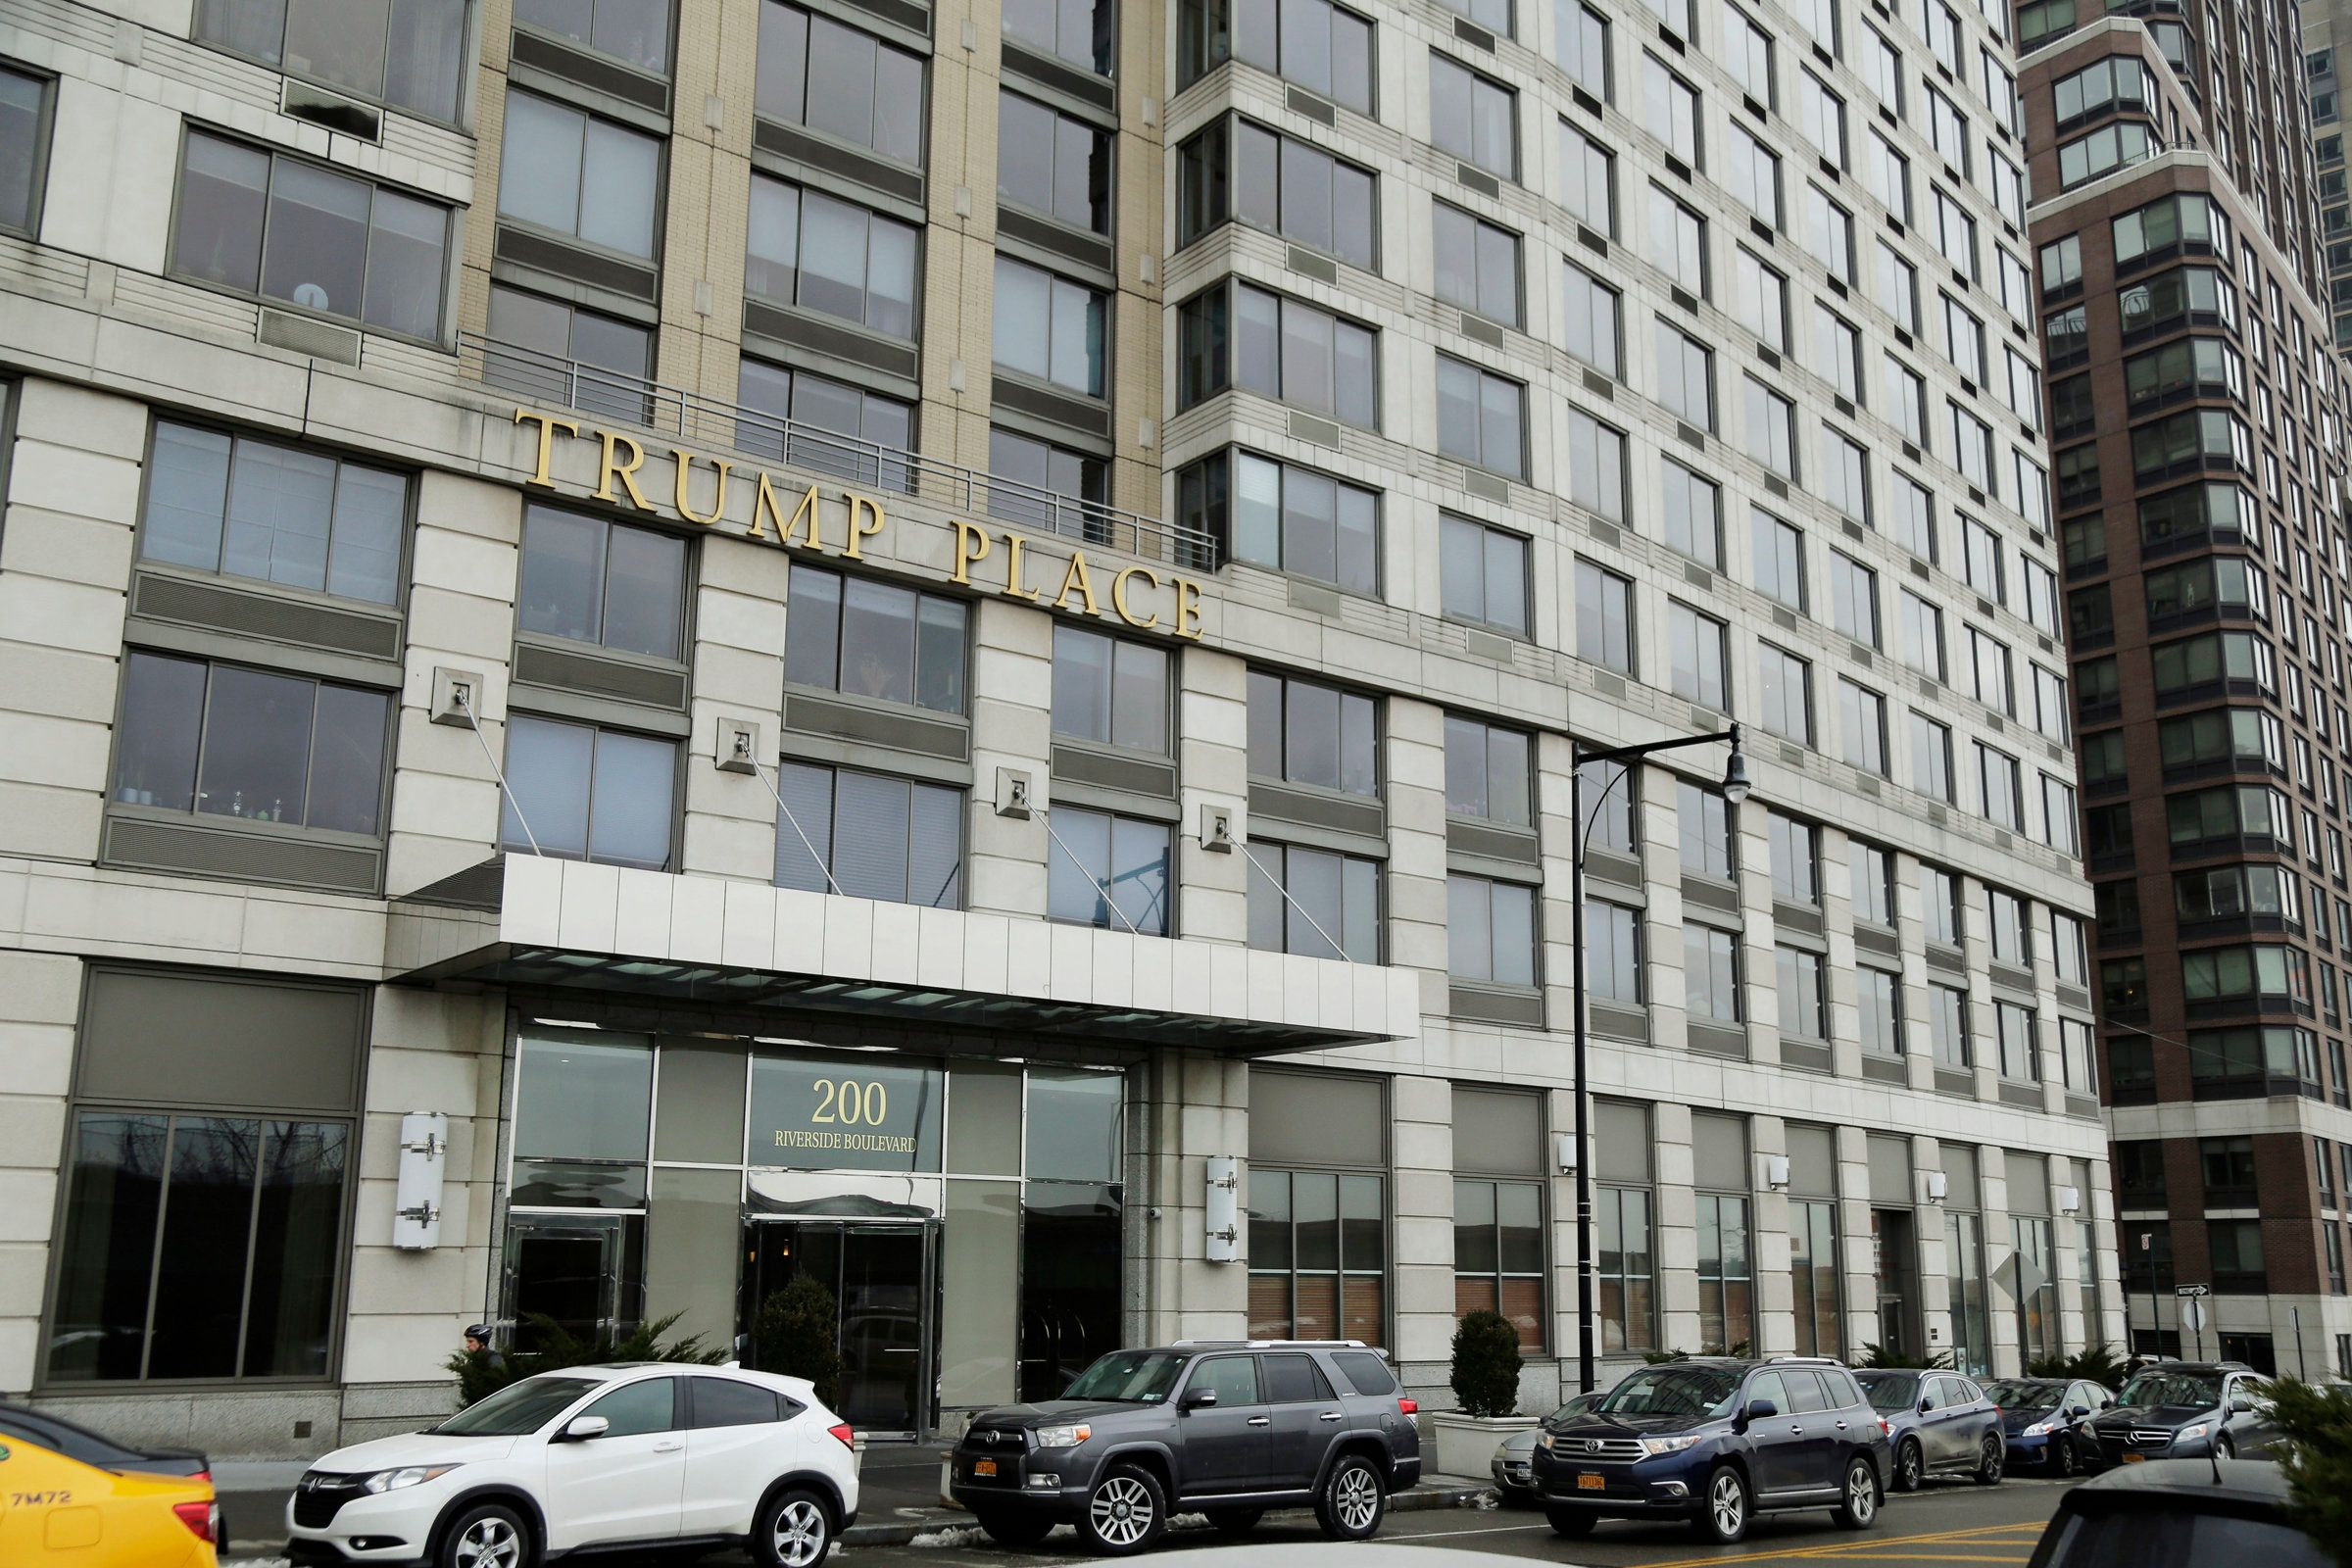 """<p> FILE - In this Jan. 11, 2018 file photo, vehicles line the curb outside of """"Trump Place,"""" at 200 Riverside Boulevard in New York. A New York state judge ruled Thursday May 3, 2018, that condominium owners in the high-rise can stop displaying the name licensed from President Donald Trump nearly two decades ago. The ruling doesn't order the brassy letters removed from the tower overlooking the Hudson River. Rather, the decision clears the way for owners to vote on the issue. (AP Photo/Seth Wenig, File)"""